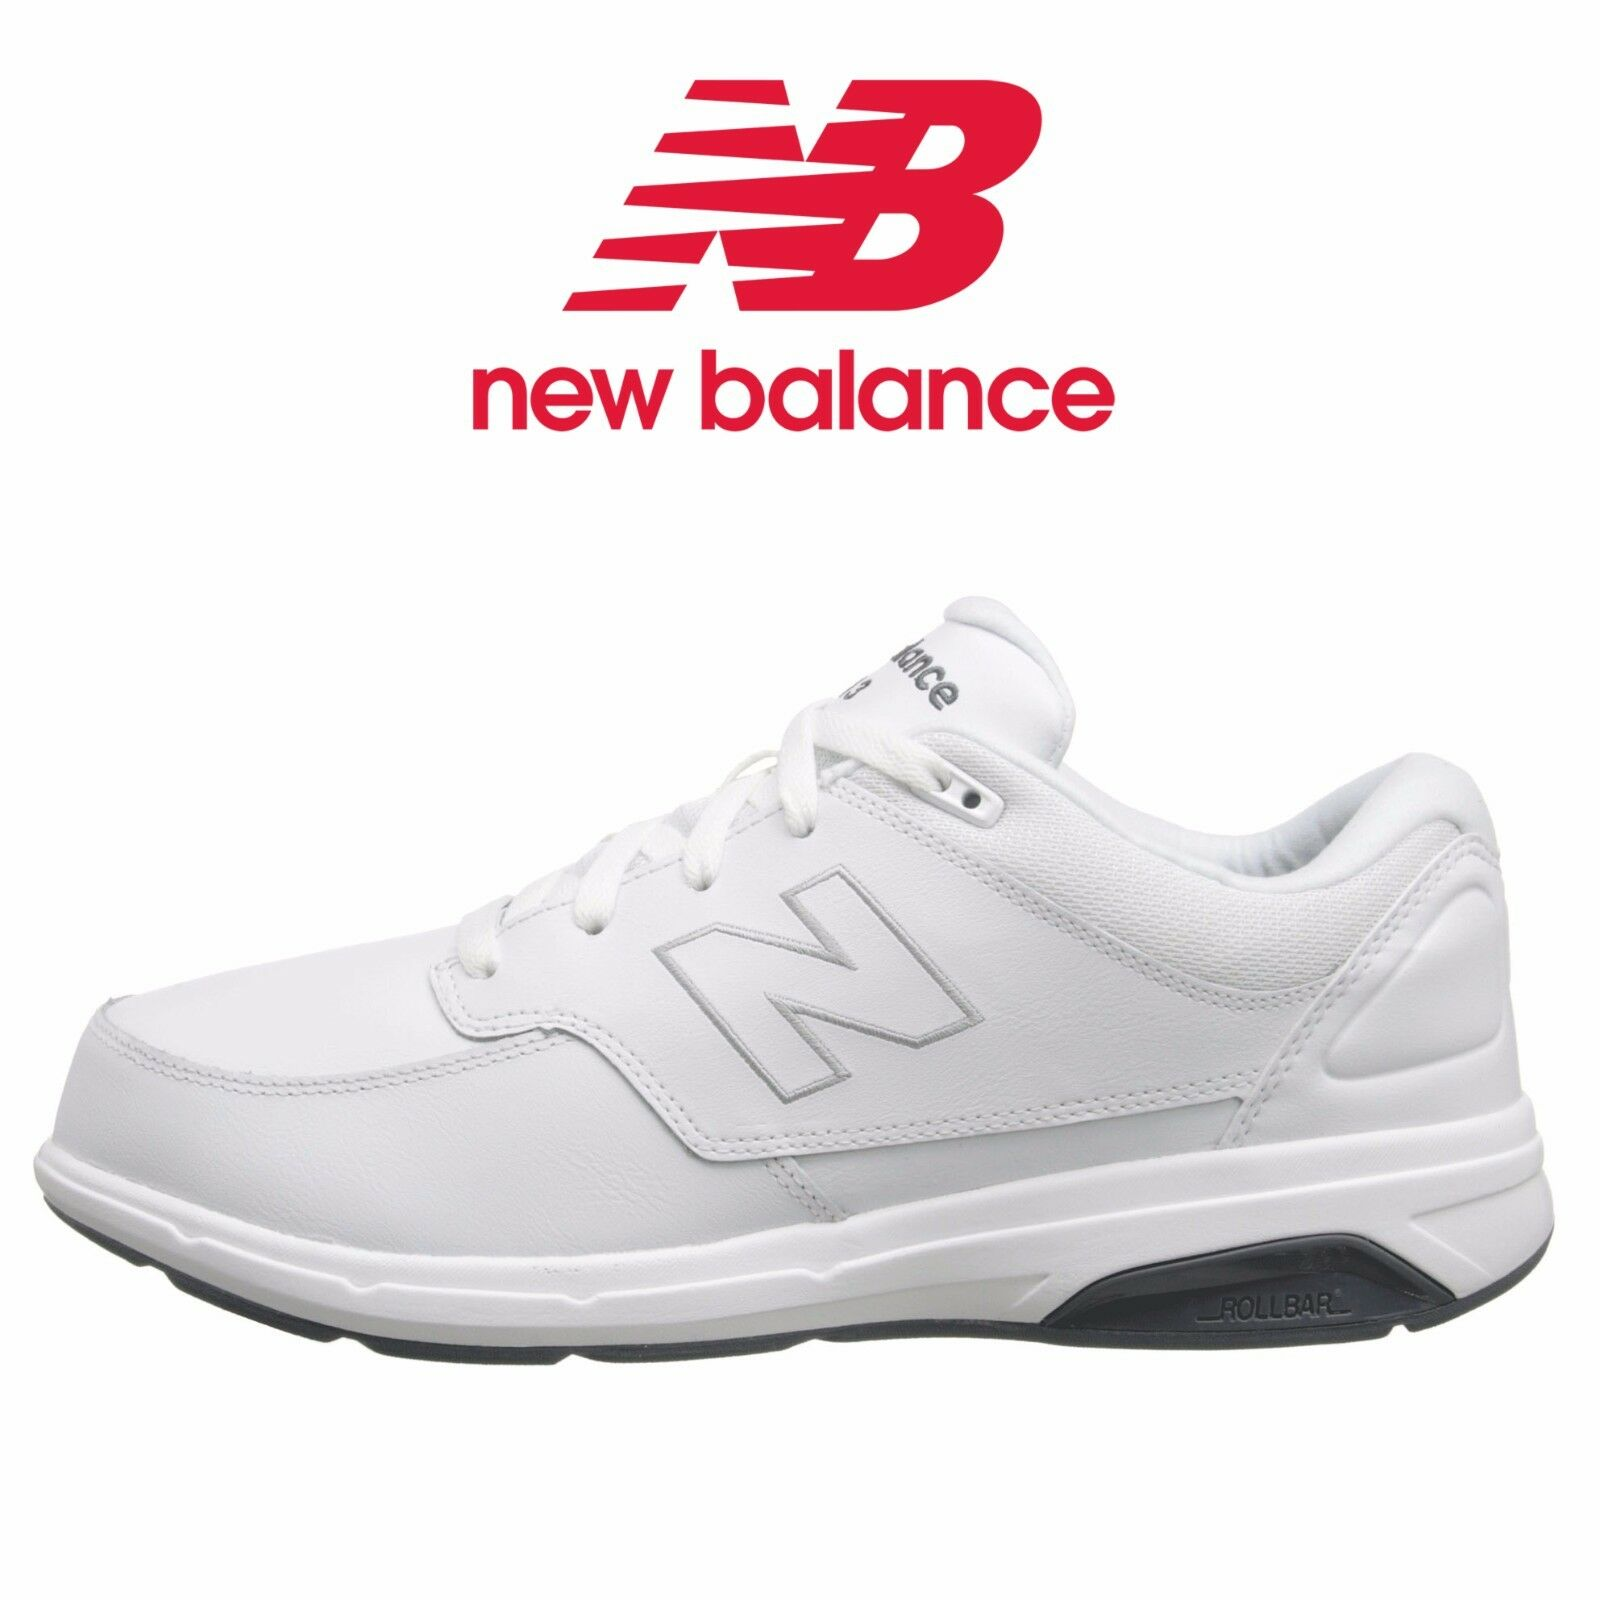 Mens New Balance MW813 Comfy Walking Shoe White Leather Leather Leather All SZs NIB MW813WT d97529